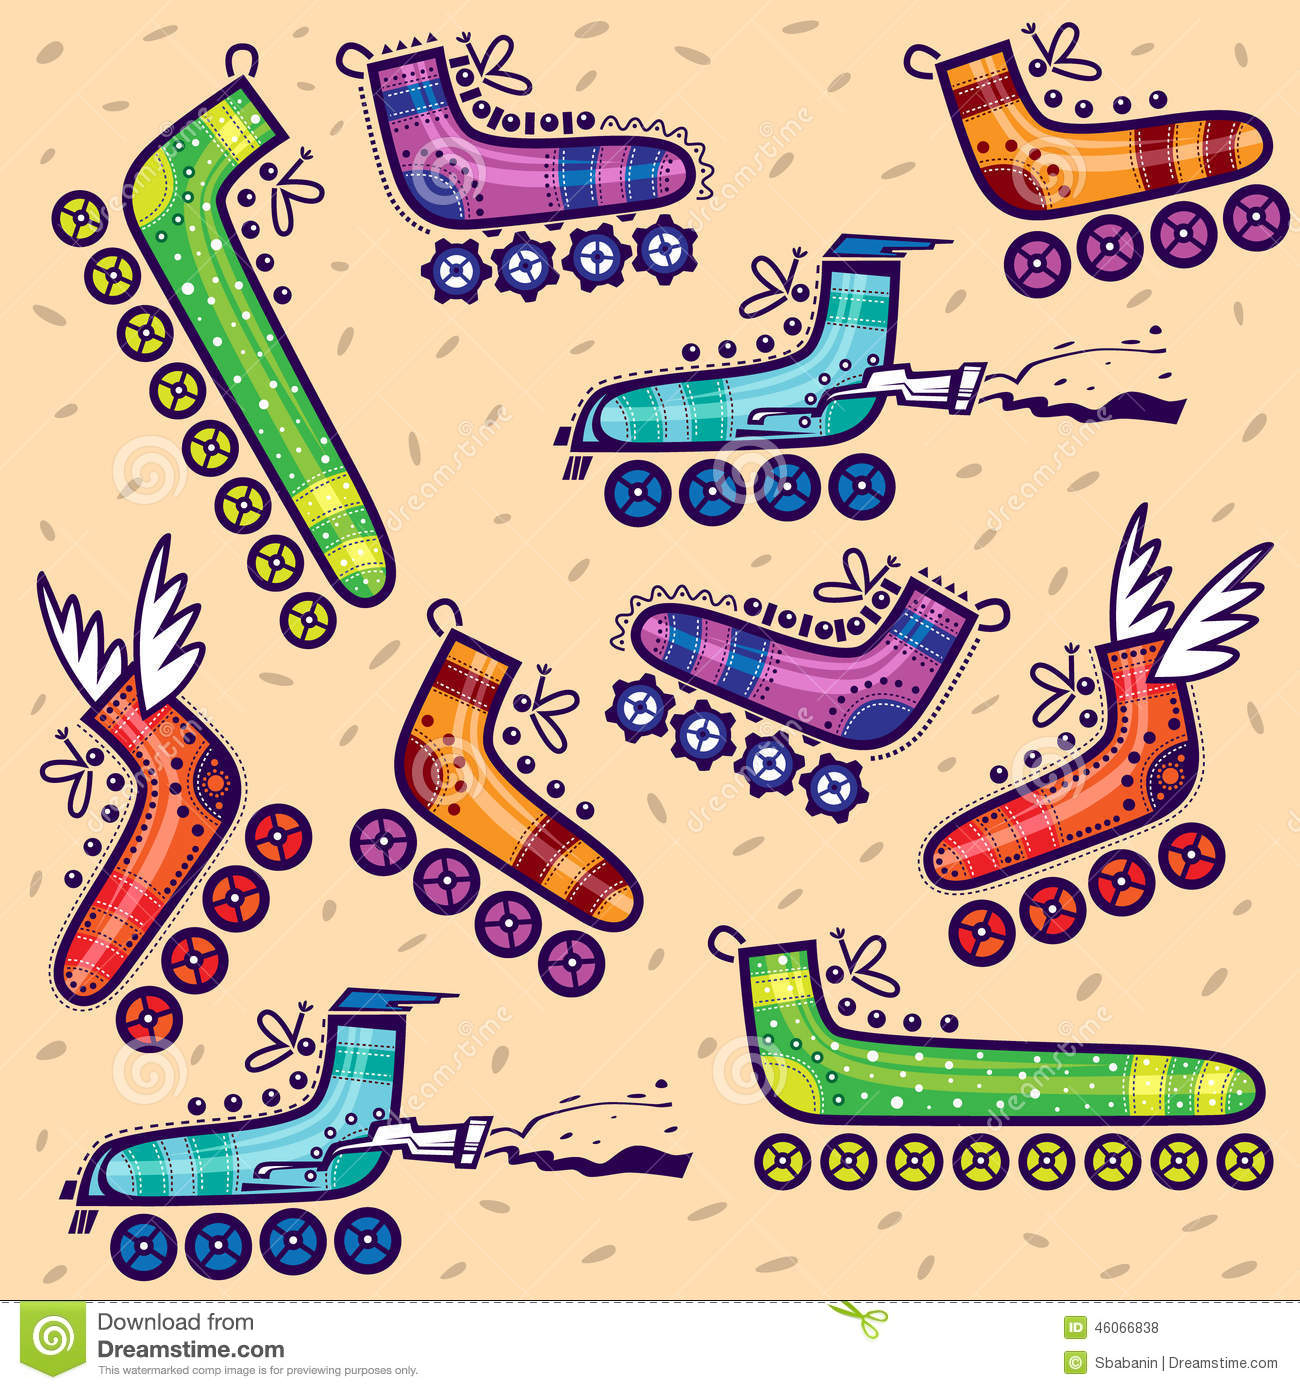 Roller skates for free - Pattern Different Types Of Roller Skates Royalty Free Stock Photos